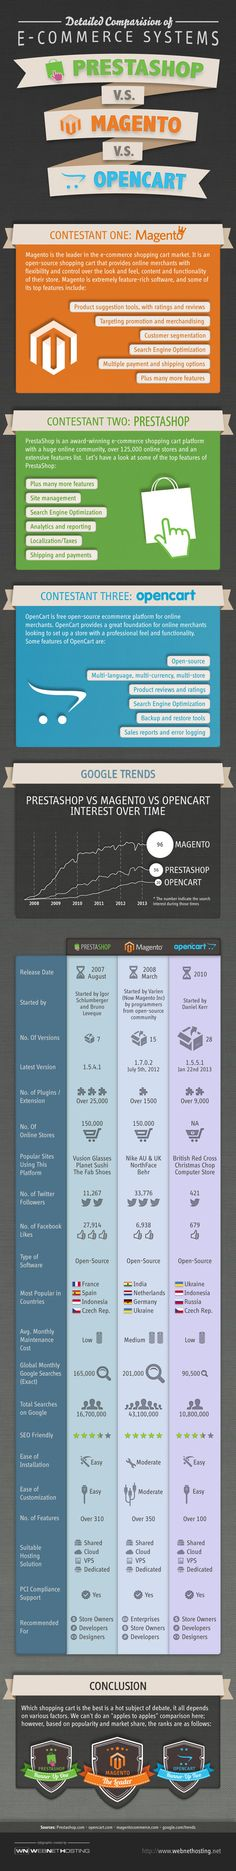 Prestashop Vs Magento Vs Opencart Comparison with detailed infographic with some interesting statistics and differences highlighted.